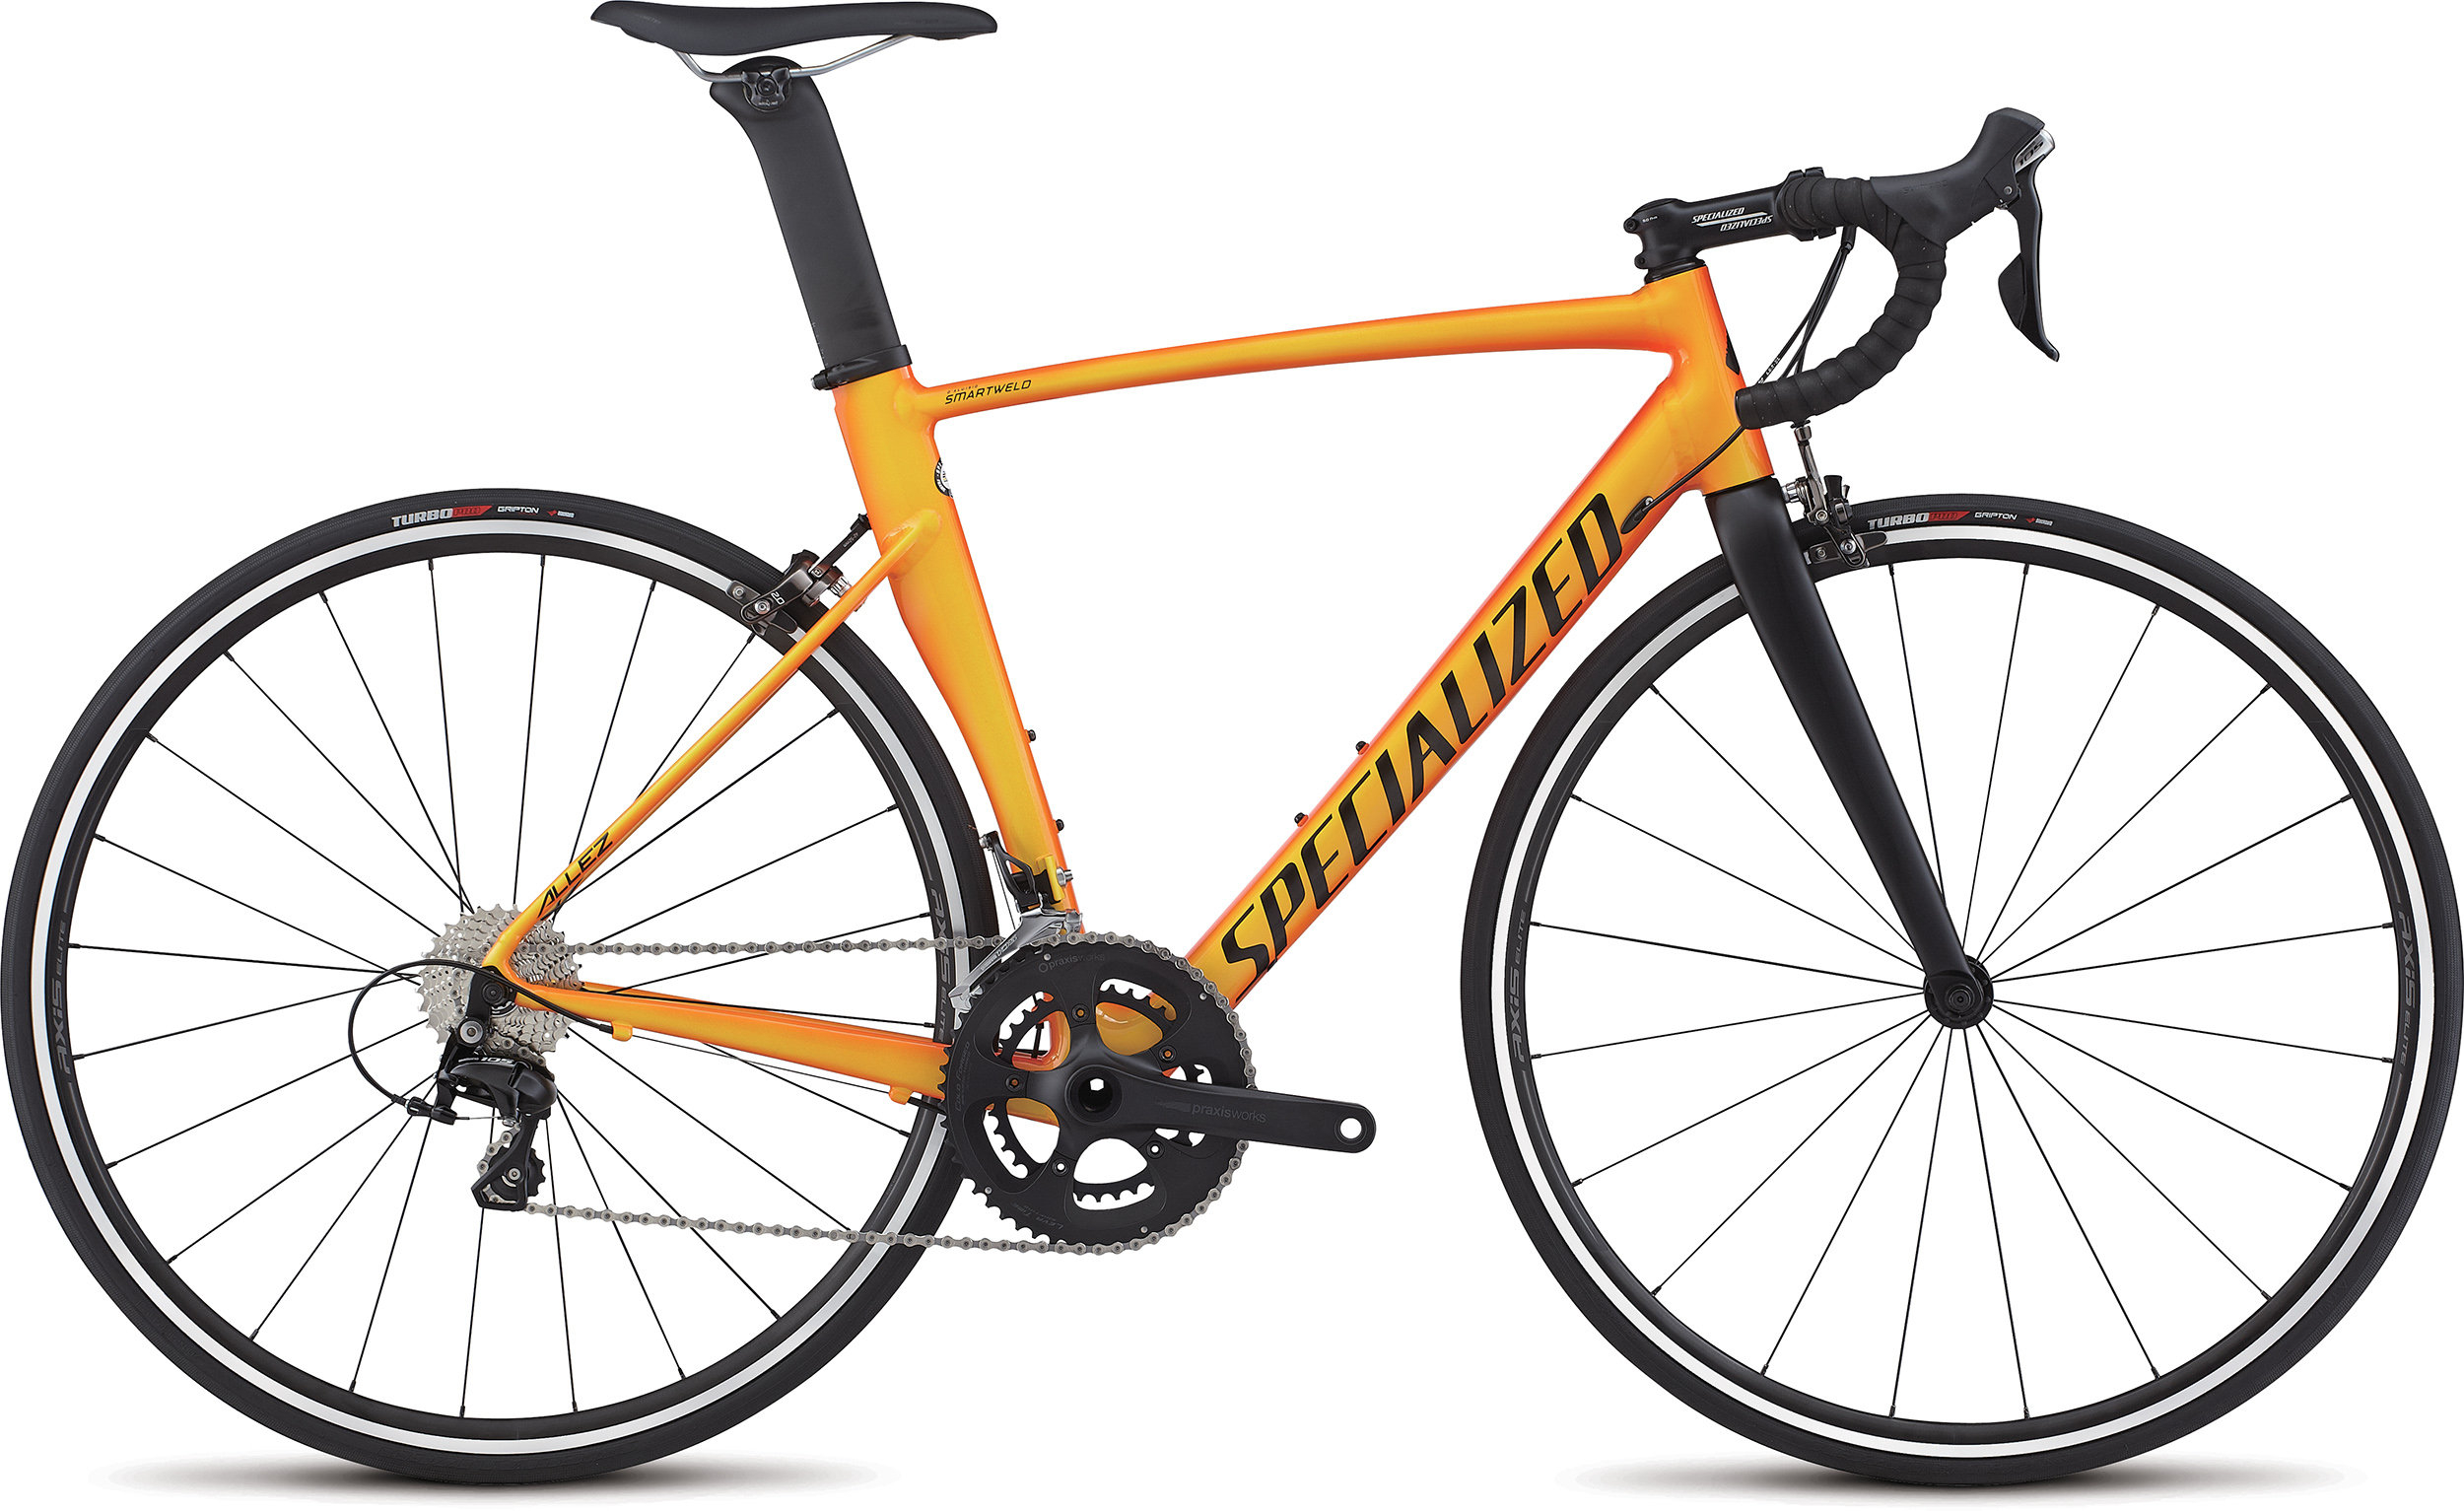 2017 Specialized Allez DSW SL Sprint Comp - Specialized Concept Store